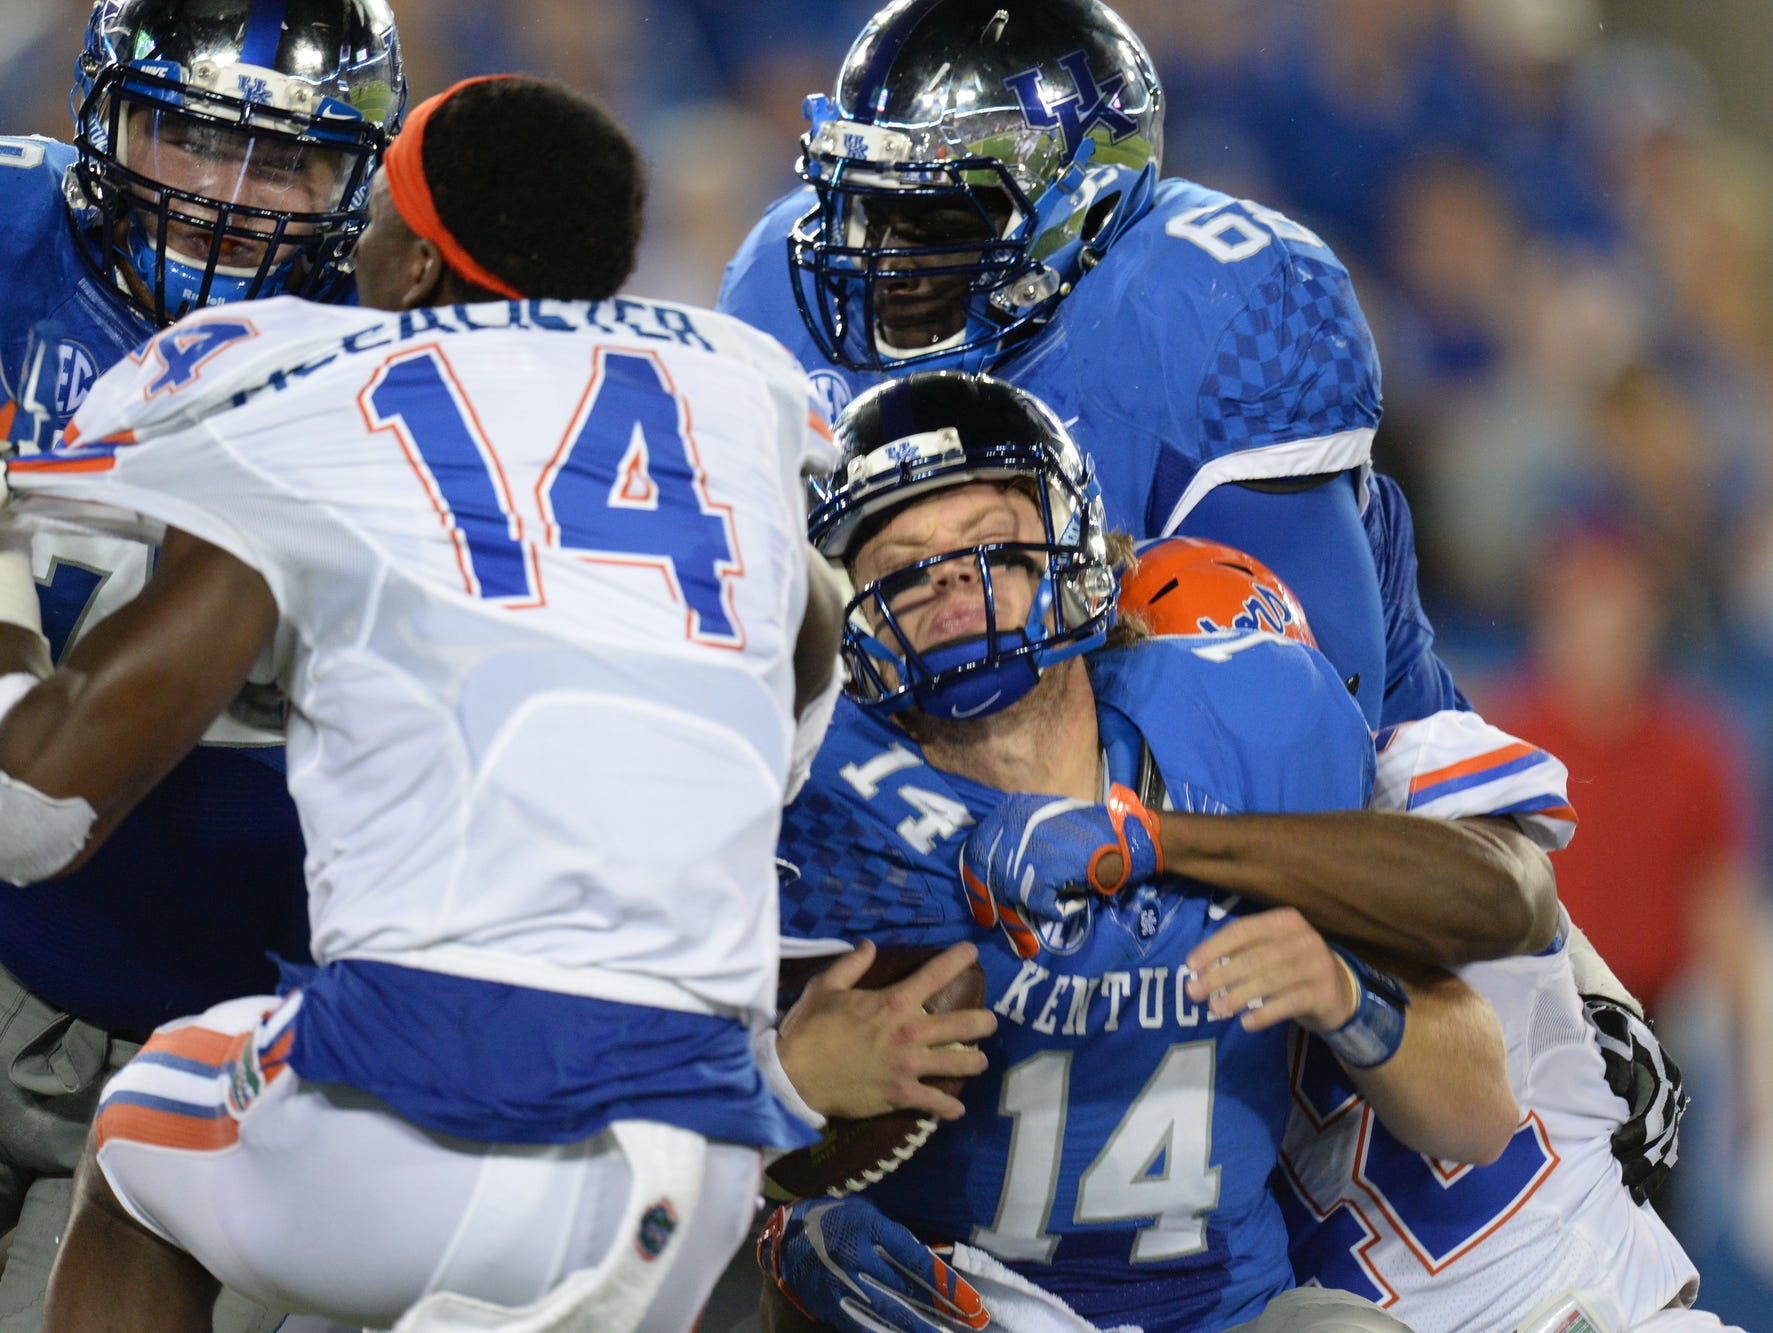 UK QB Patrick Towles is sacked during the first half of the University of Kentucky - Florida football game at Commonwealth Stadium in Lexington, Ky., on Saturday, September 19, 2015.